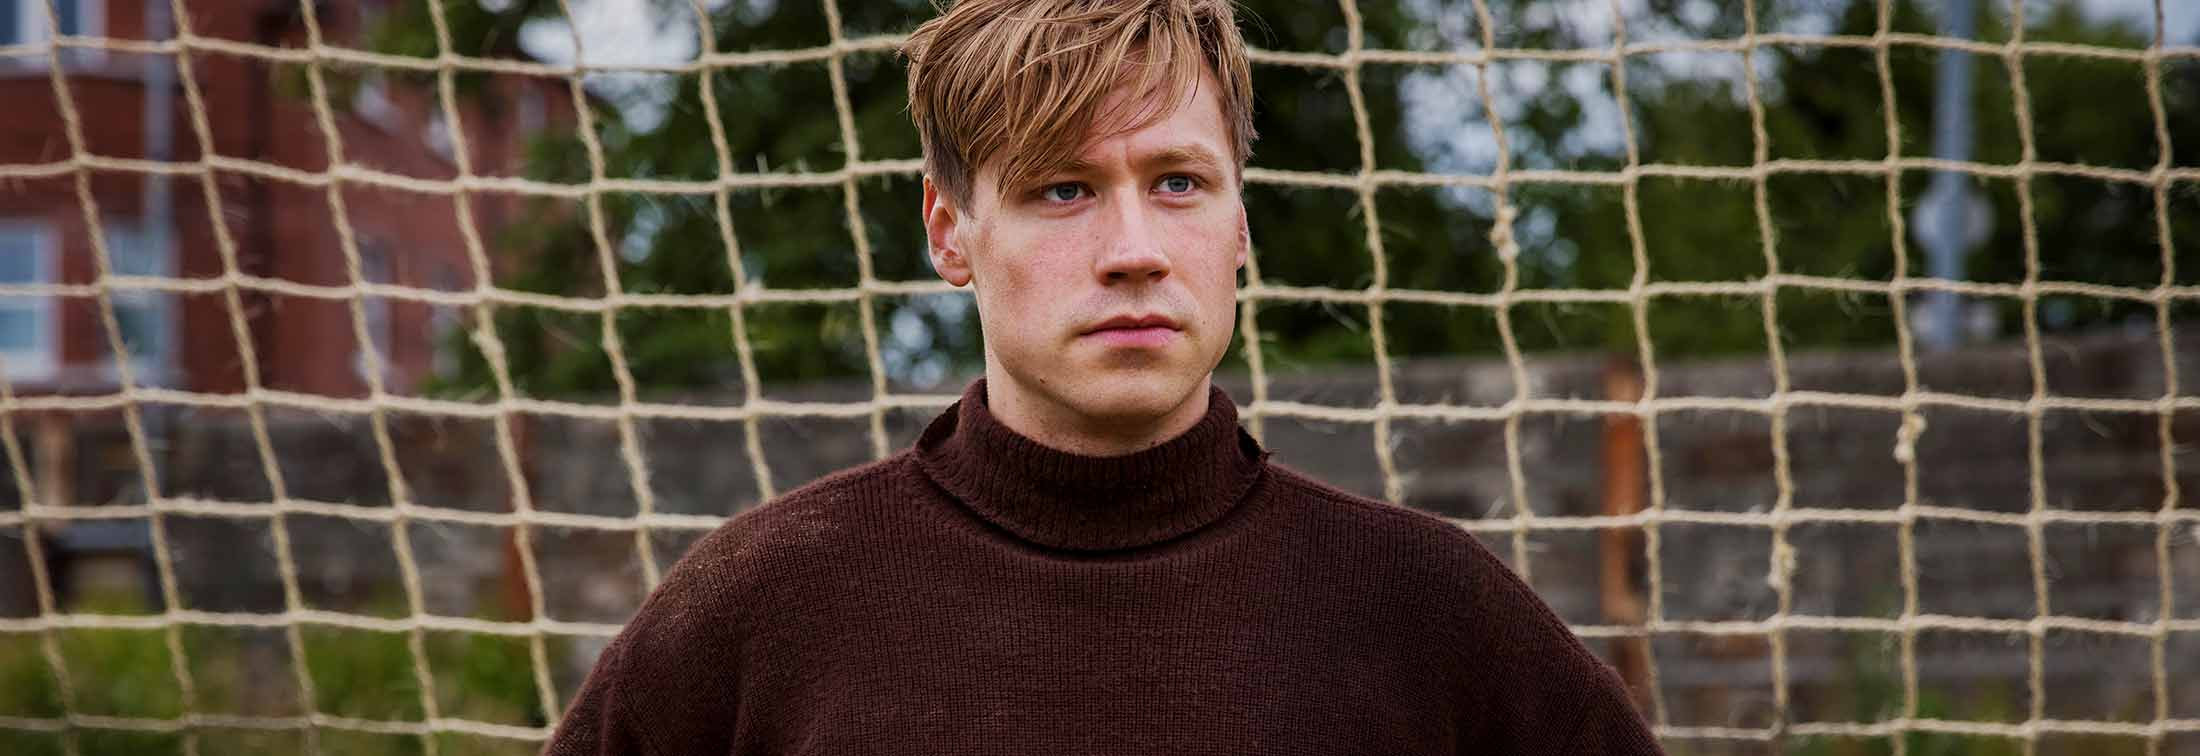 The Keeper - True story of WWII prisoner to soccer superstar